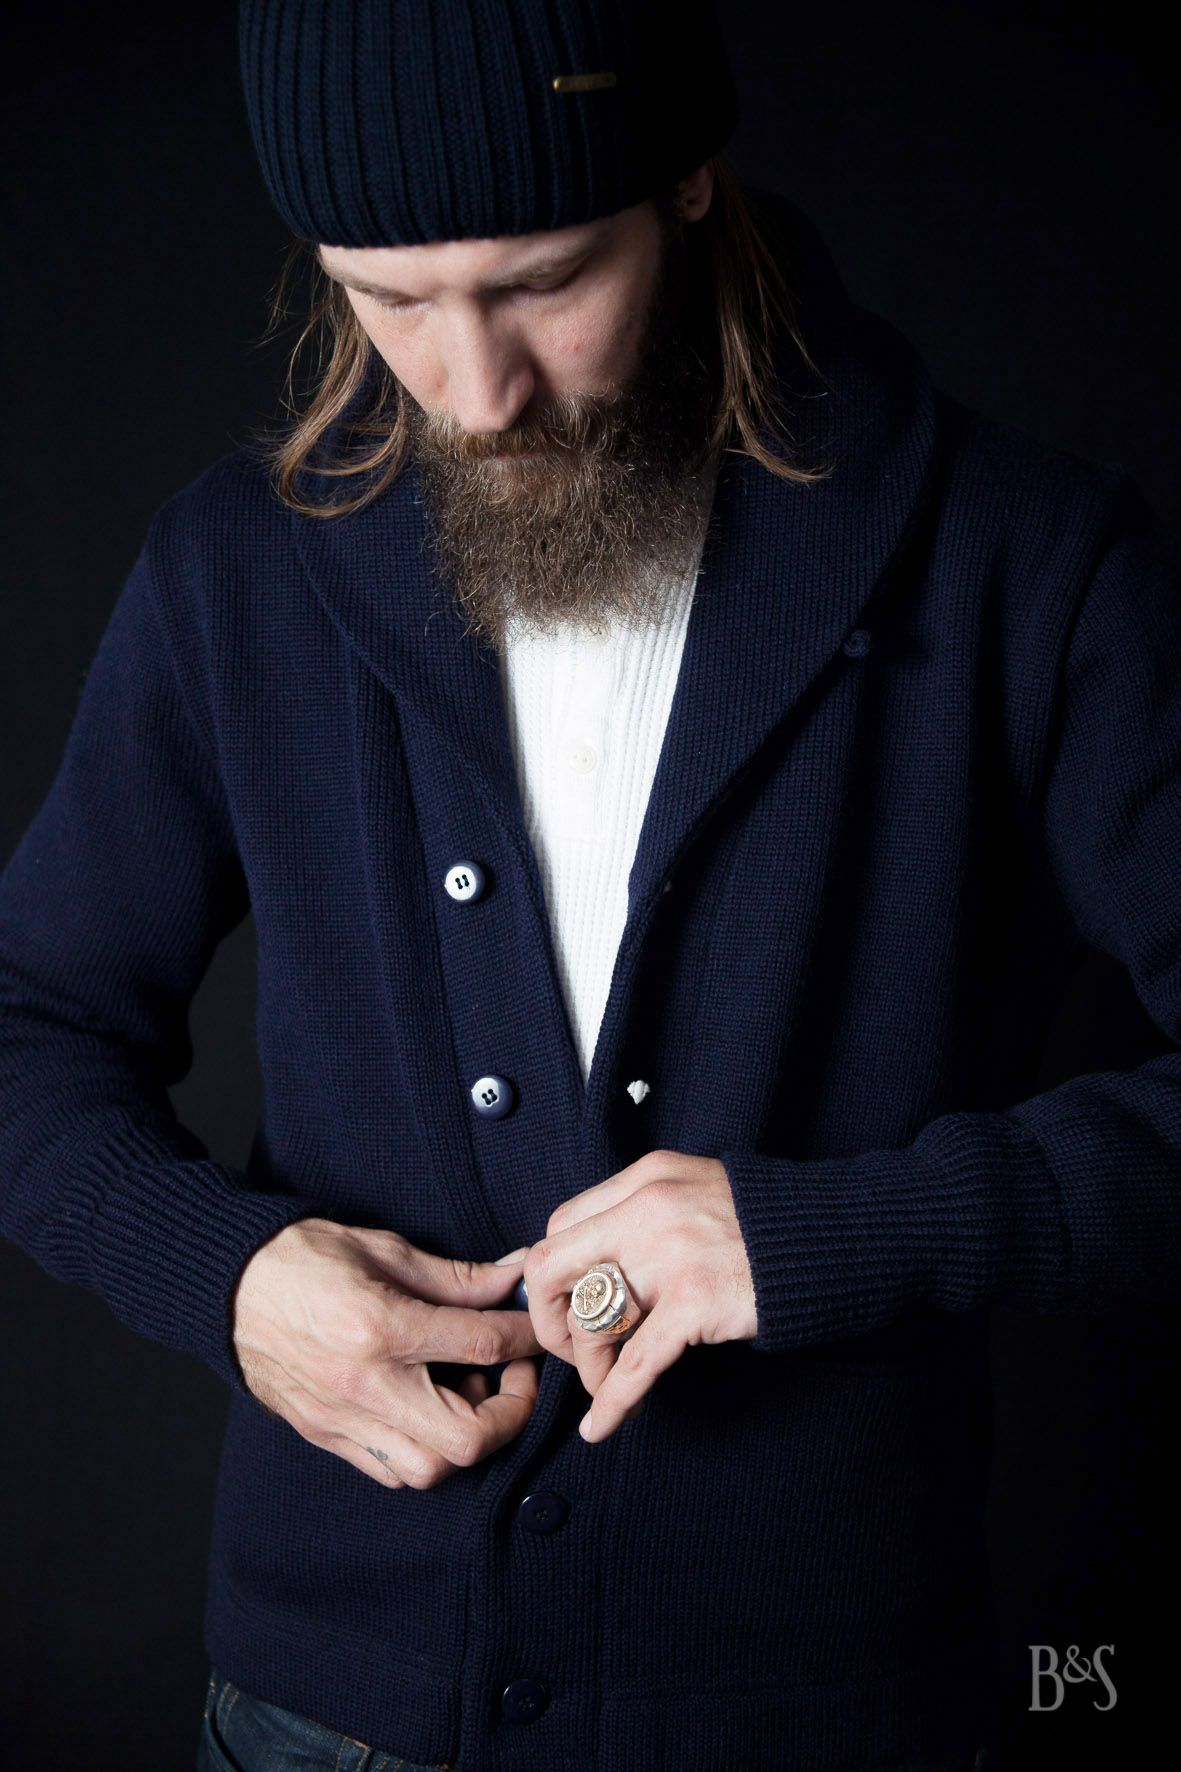 bd557890 North Sea Clothing Expedition Cardigan x Stetson Northport Beanie x Fine  Light Trading The Skull Ring - www.burgundschild.com